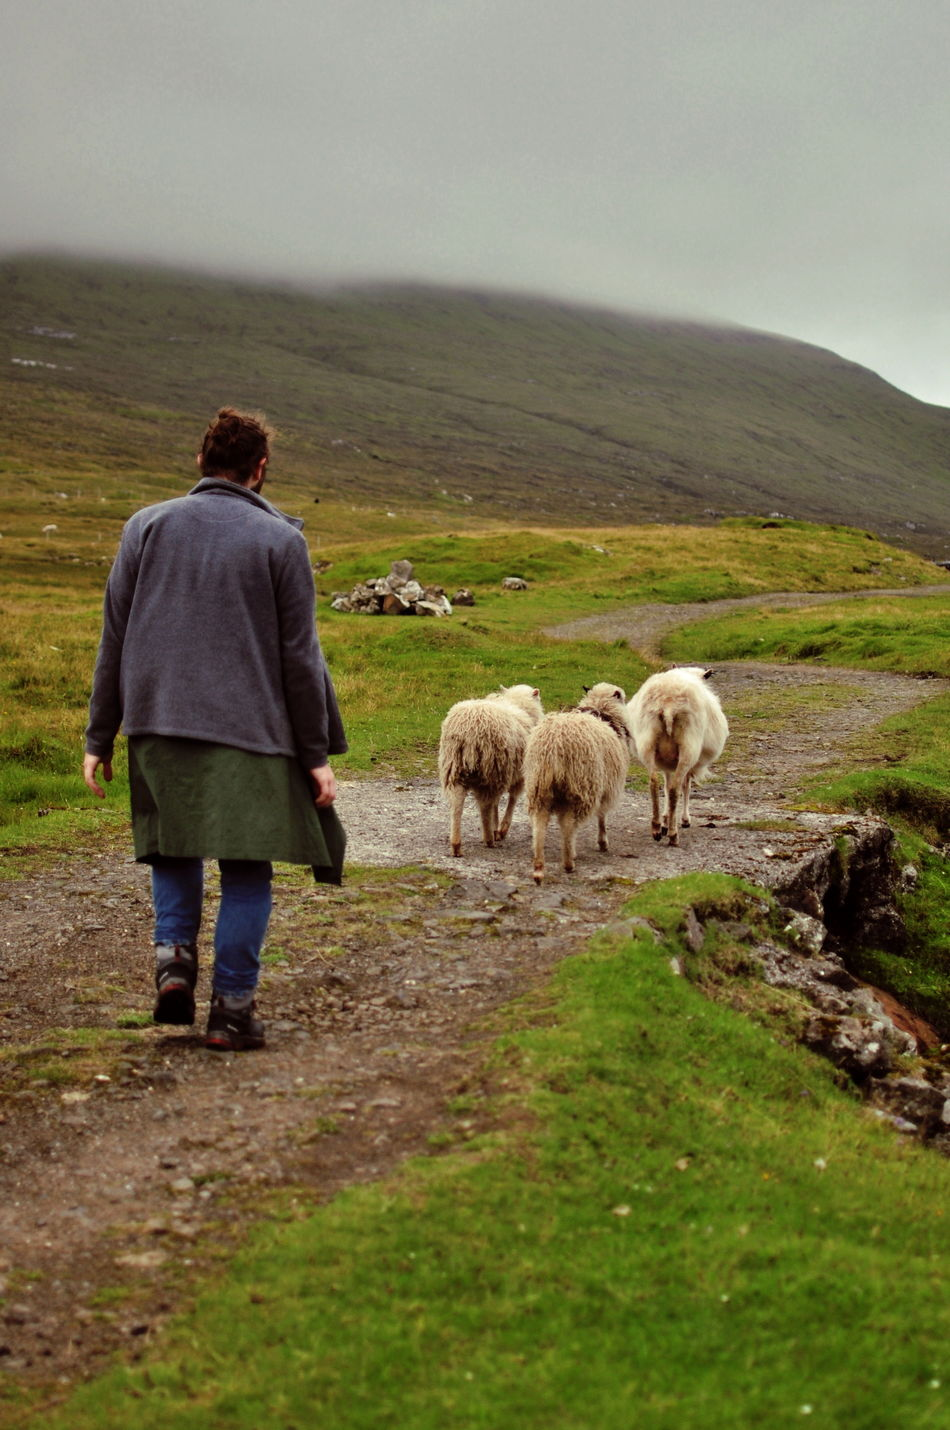 Faroe Islands Grass Hill Lifestyles Livestock Men Mountain Person Pet Owner Pets Sheep The Way Forward Togetherness Walking